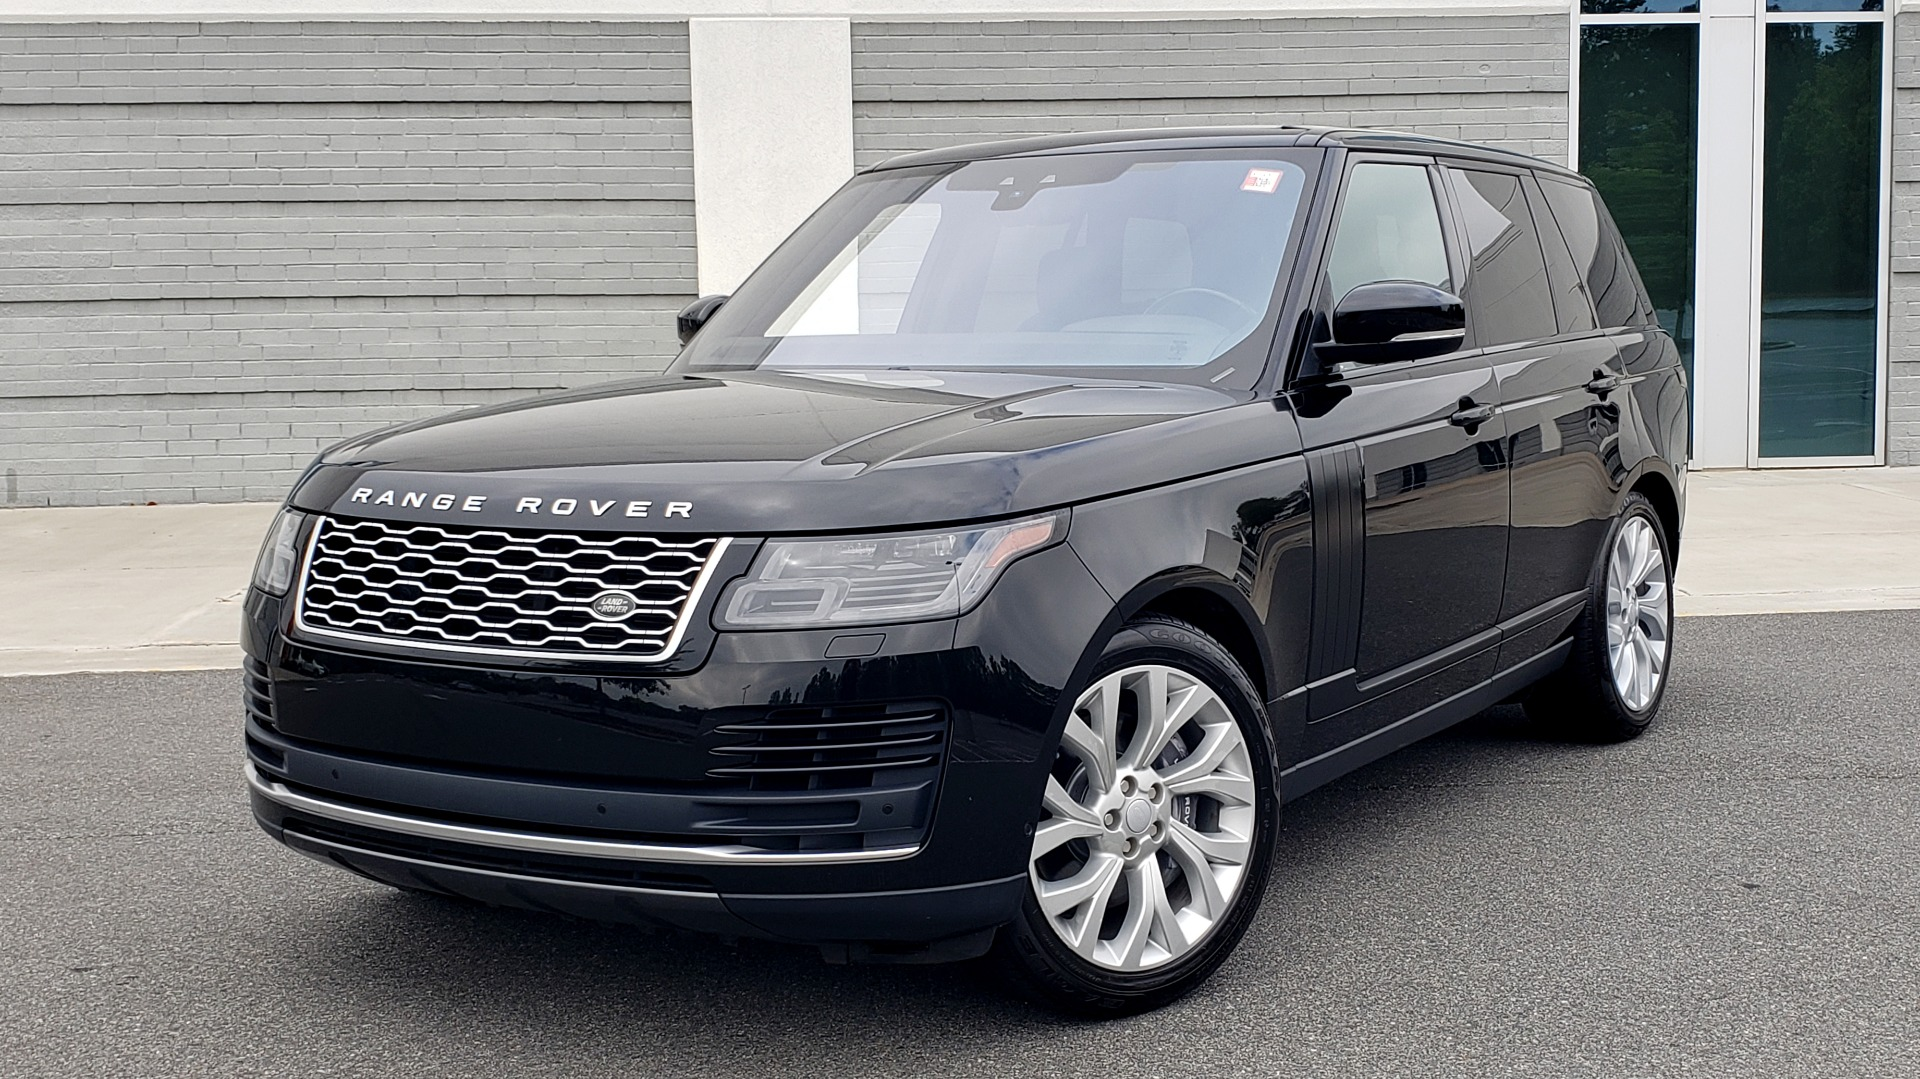 Used 2018 Land Rover RANGE ROVER SUPERCHARGED V8 / DRIVE PRO / NAV / PANO-ROOF / REARVIEW for sale $84,995 at Formula Imports in Charlotte NC 28227 1